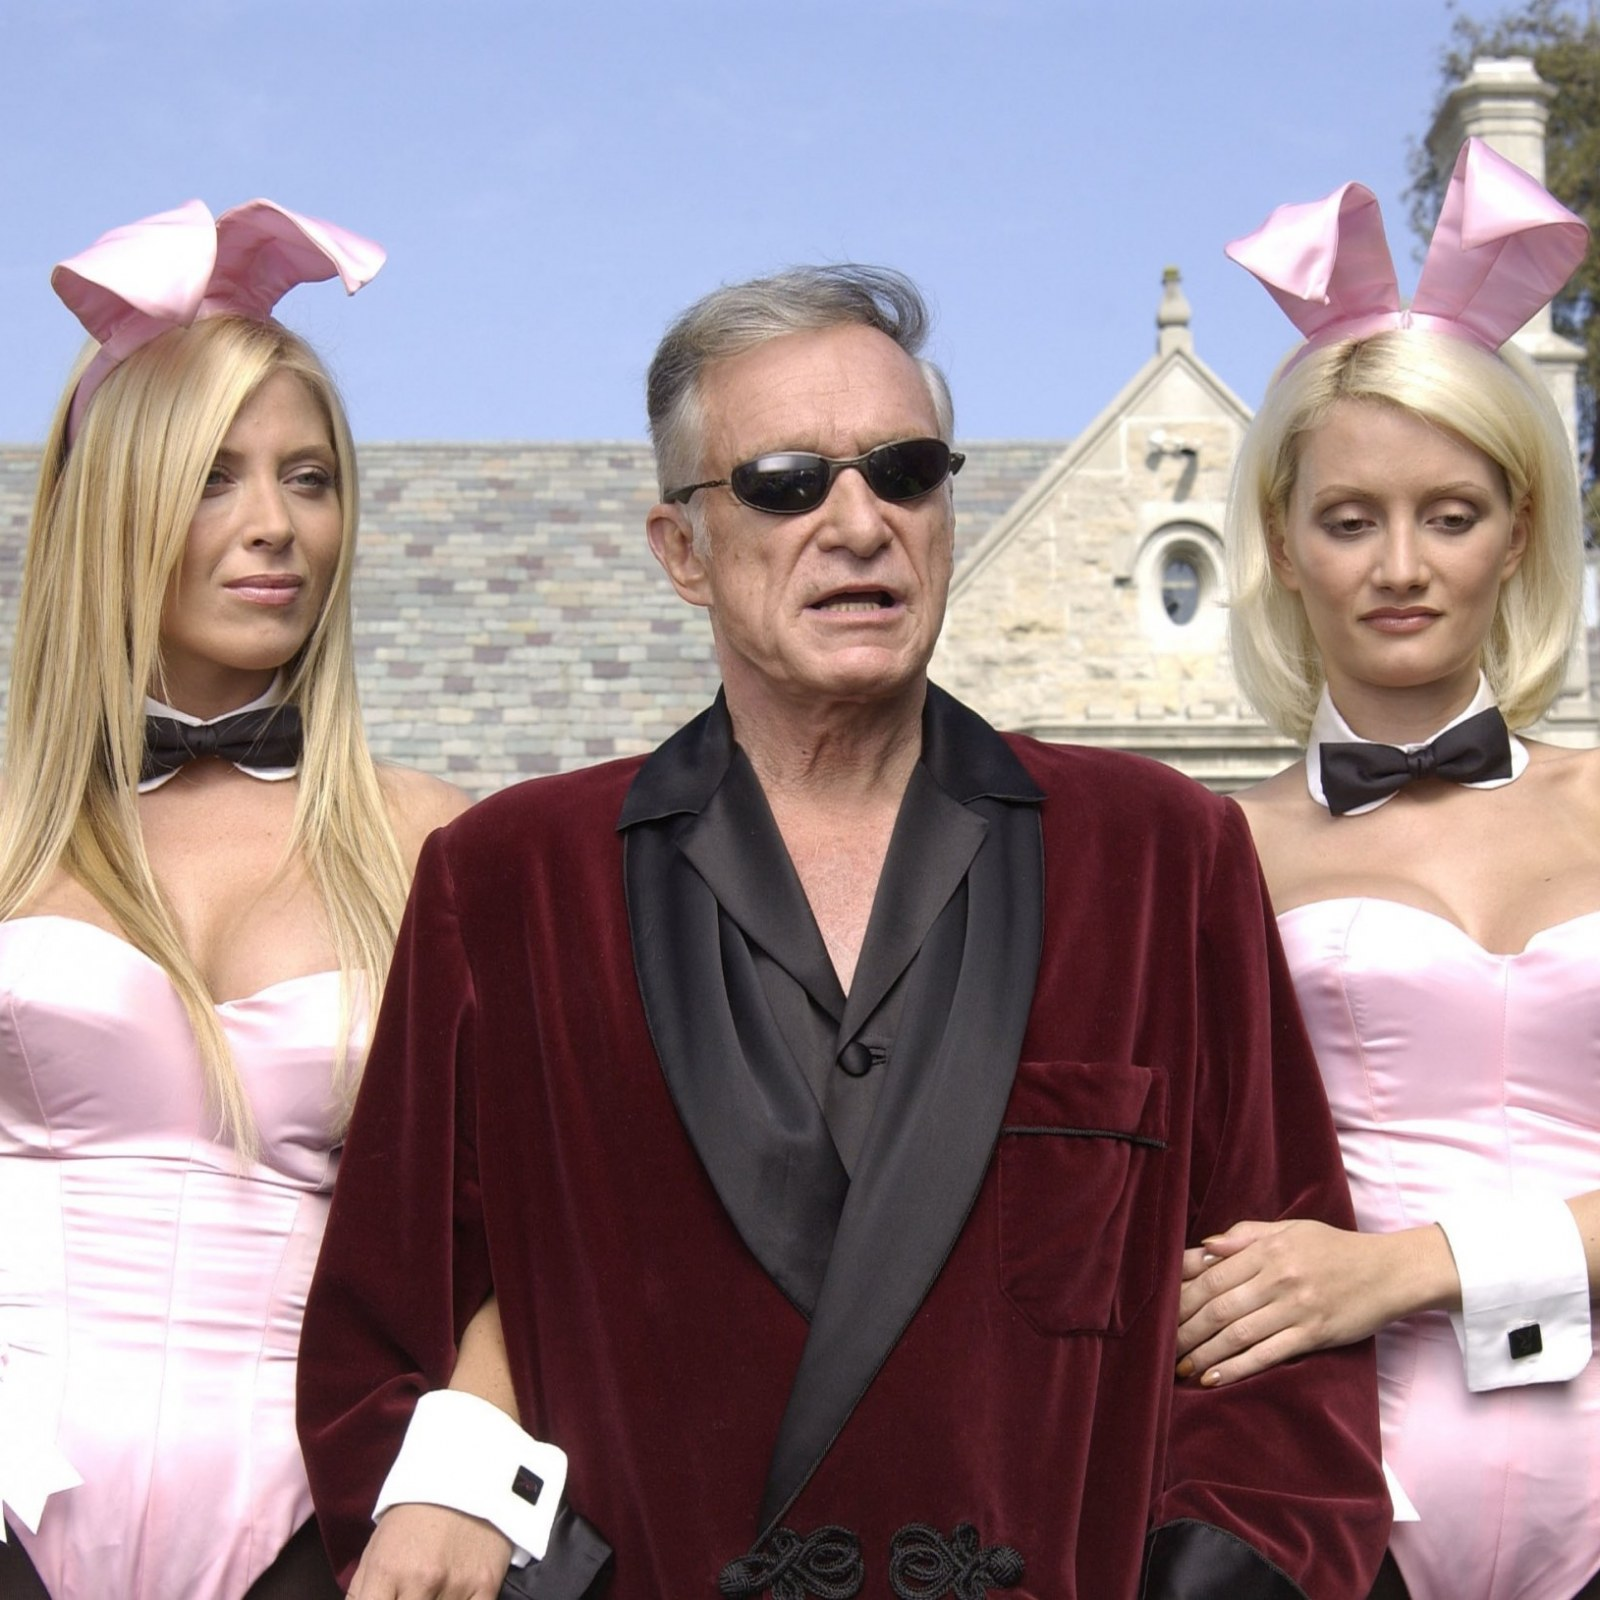 Hugh Hefner S Playboy Mansion Protected From Demolition By New Owners